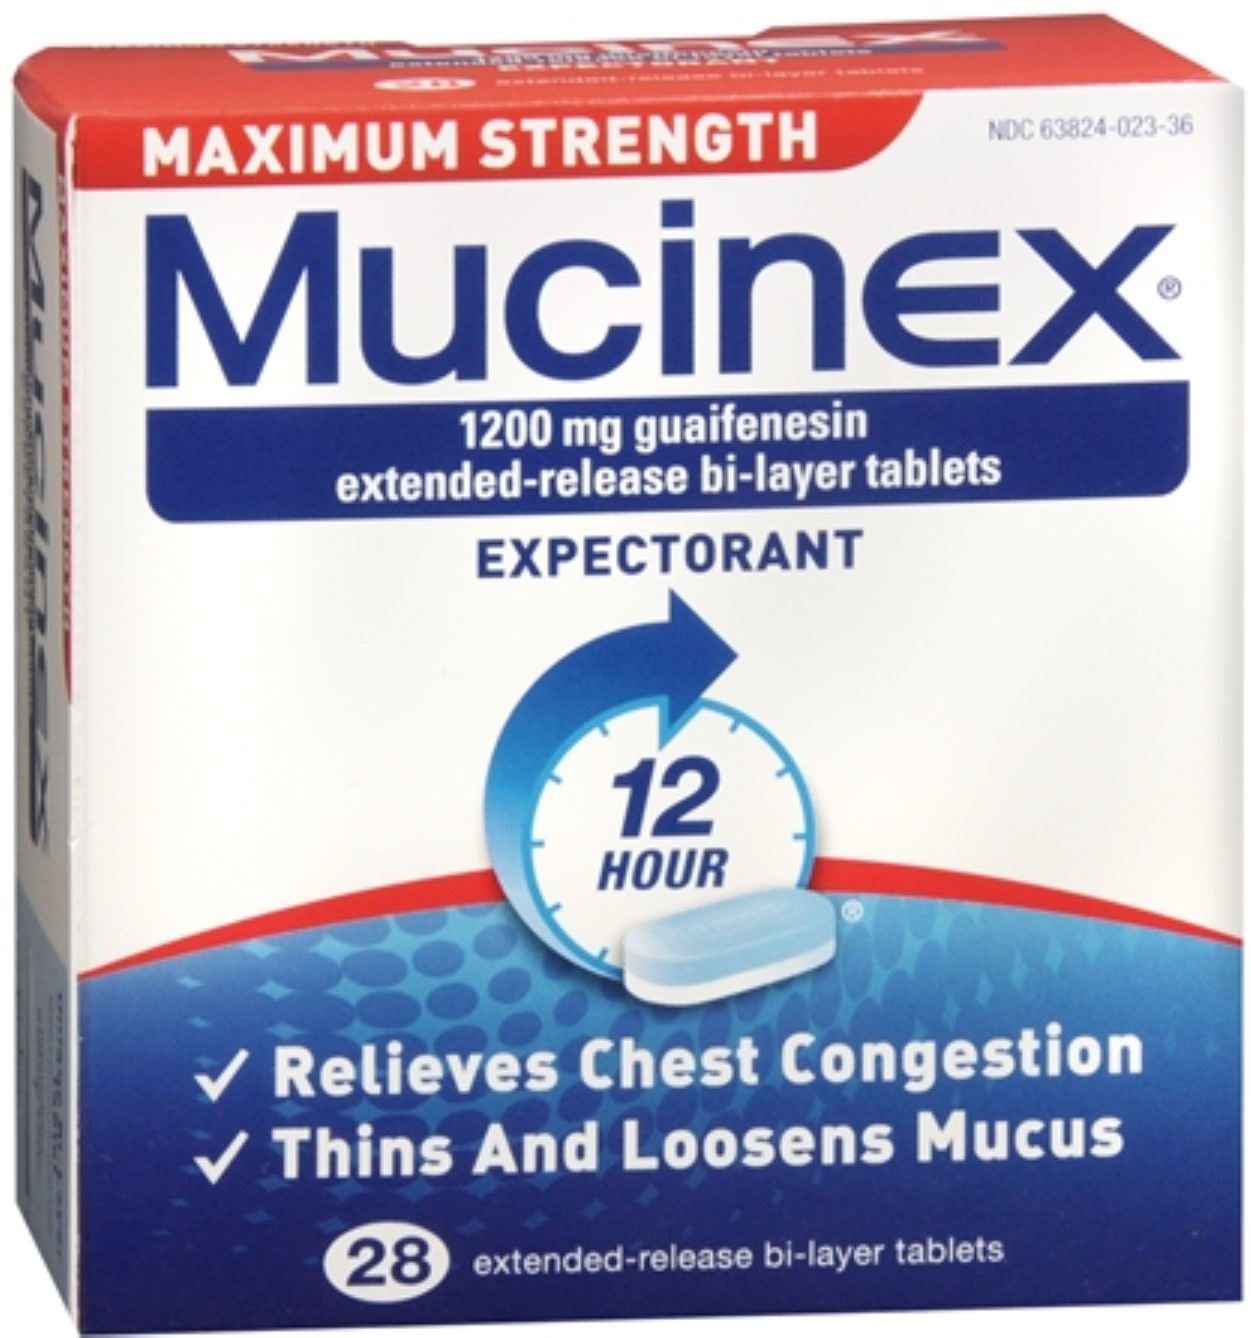 Mucinex Expectorant Extended-Release Tablets Maximum Strength 28 Tablets (Pack of 2)